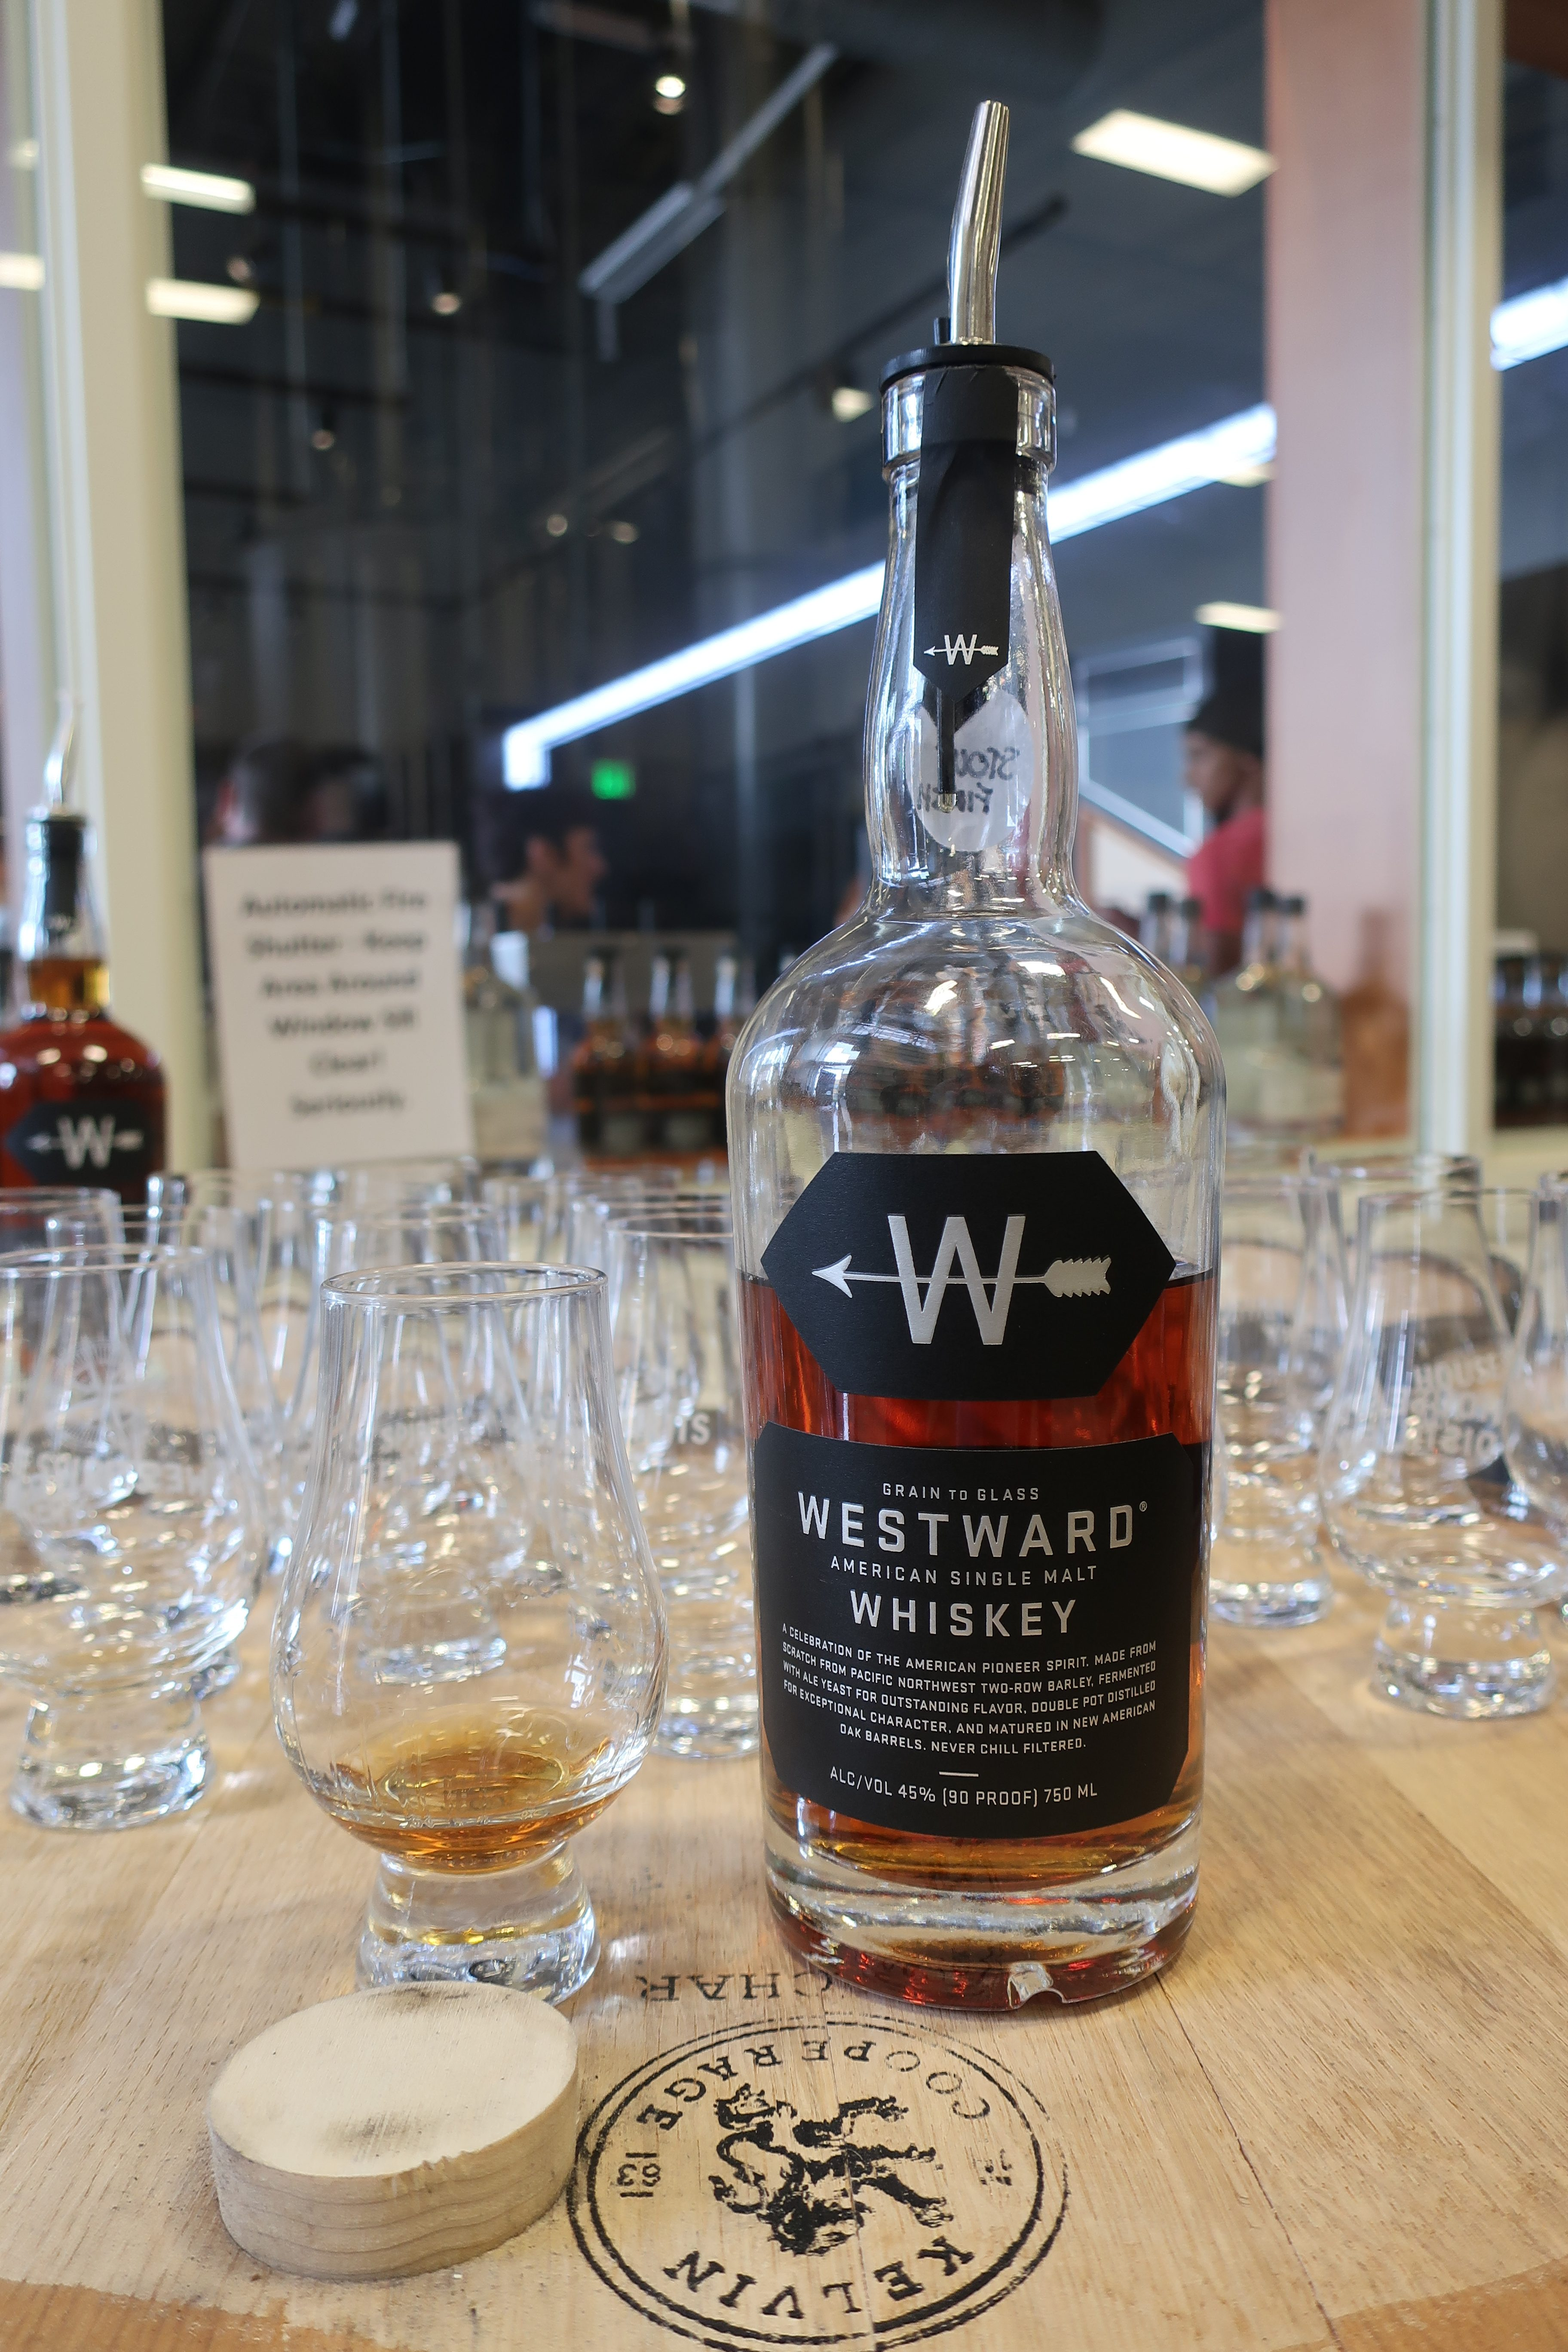 Westward American Single Malt Whiskey during a recent tour of the distillery.